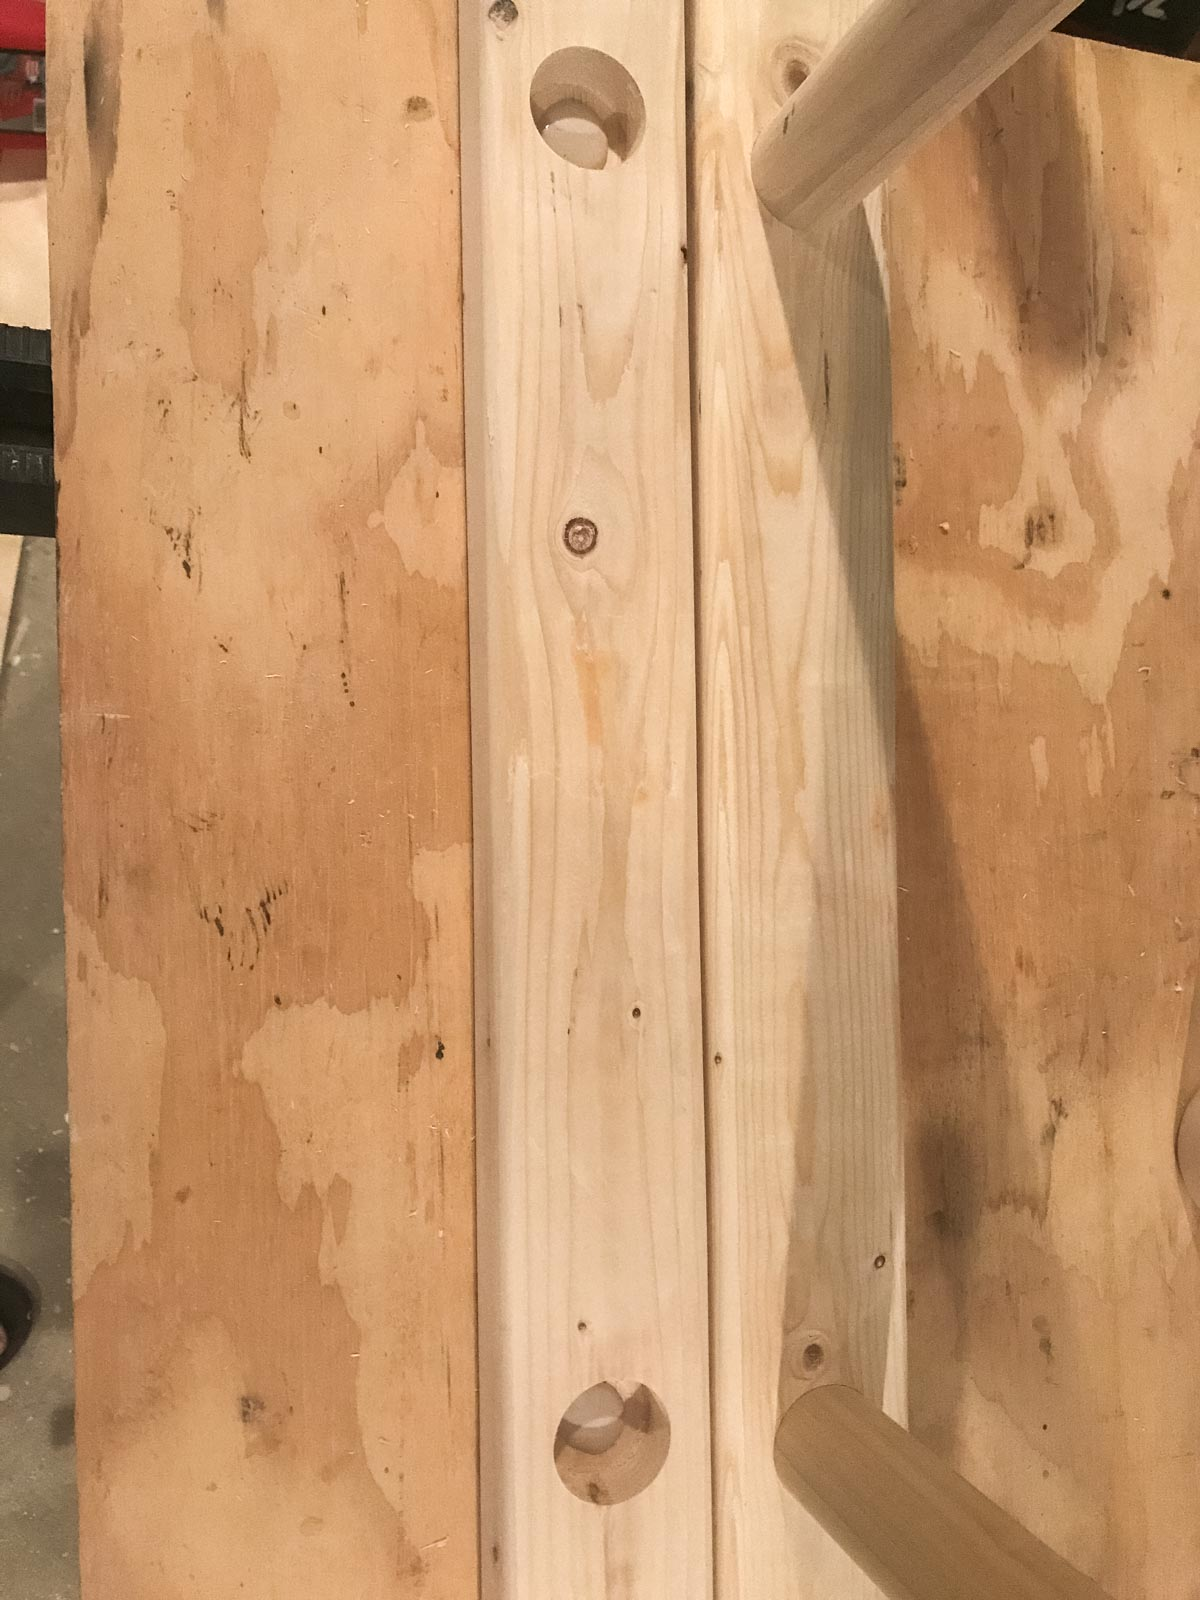 lining ladder leg with other ladder leg with dowels